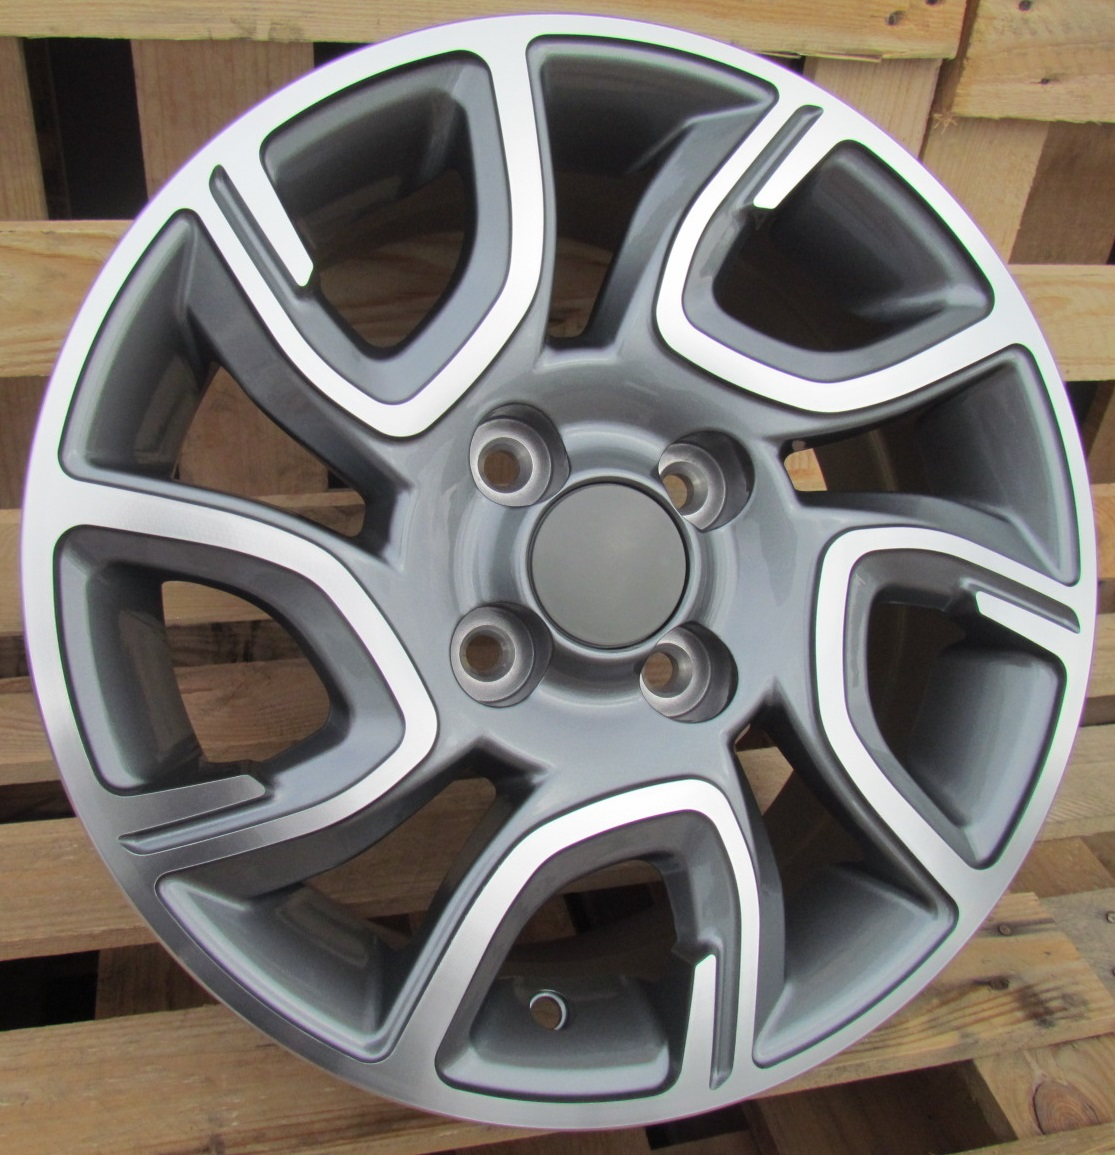 K14X6 4X100 ET35 54.1 XFE186 MG+Powder Coating RWR KI (+2eur) (R)## 6x14 ET34 4x100